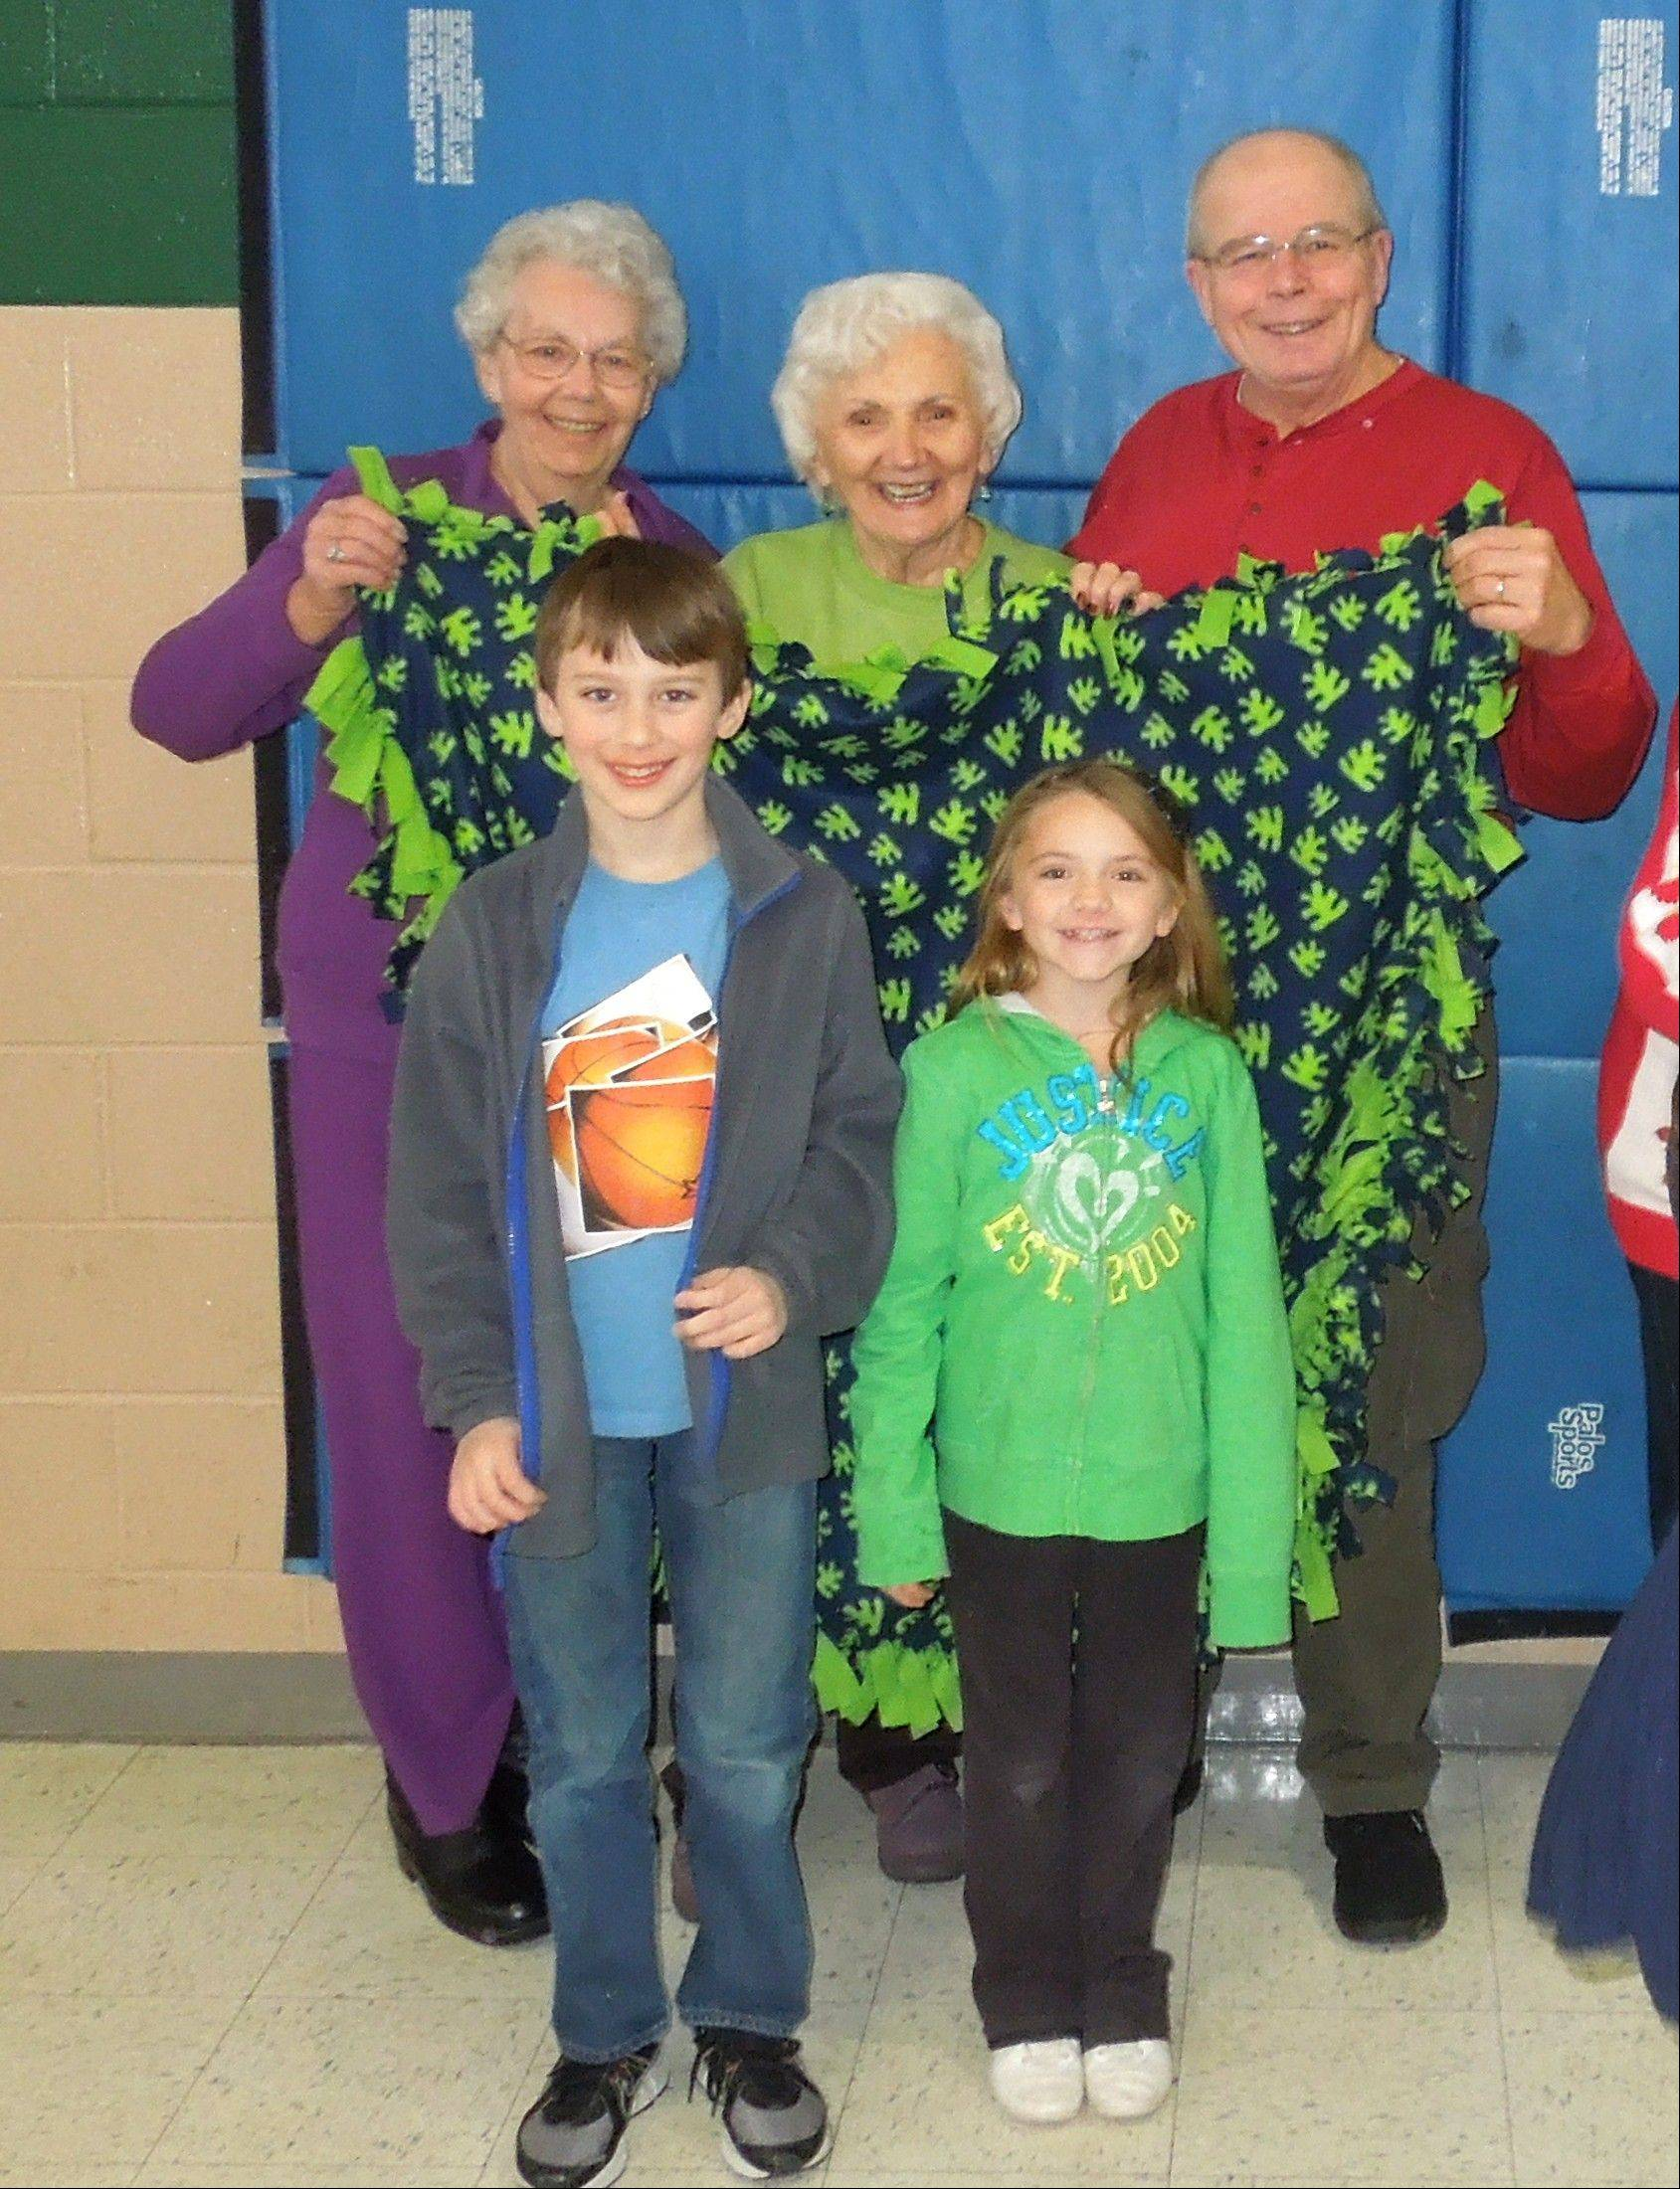 Lois Venn, from left, Sherron Schiewe, and Paul Kozlowski of Lombard were guests at Trinity Lutheran School's Senior Luncheon, where they worked to make blankets for hospice patients with students, including third-grader Andrew Fink of Lombard and fourth-grader Taylor Majer of South Elgin.